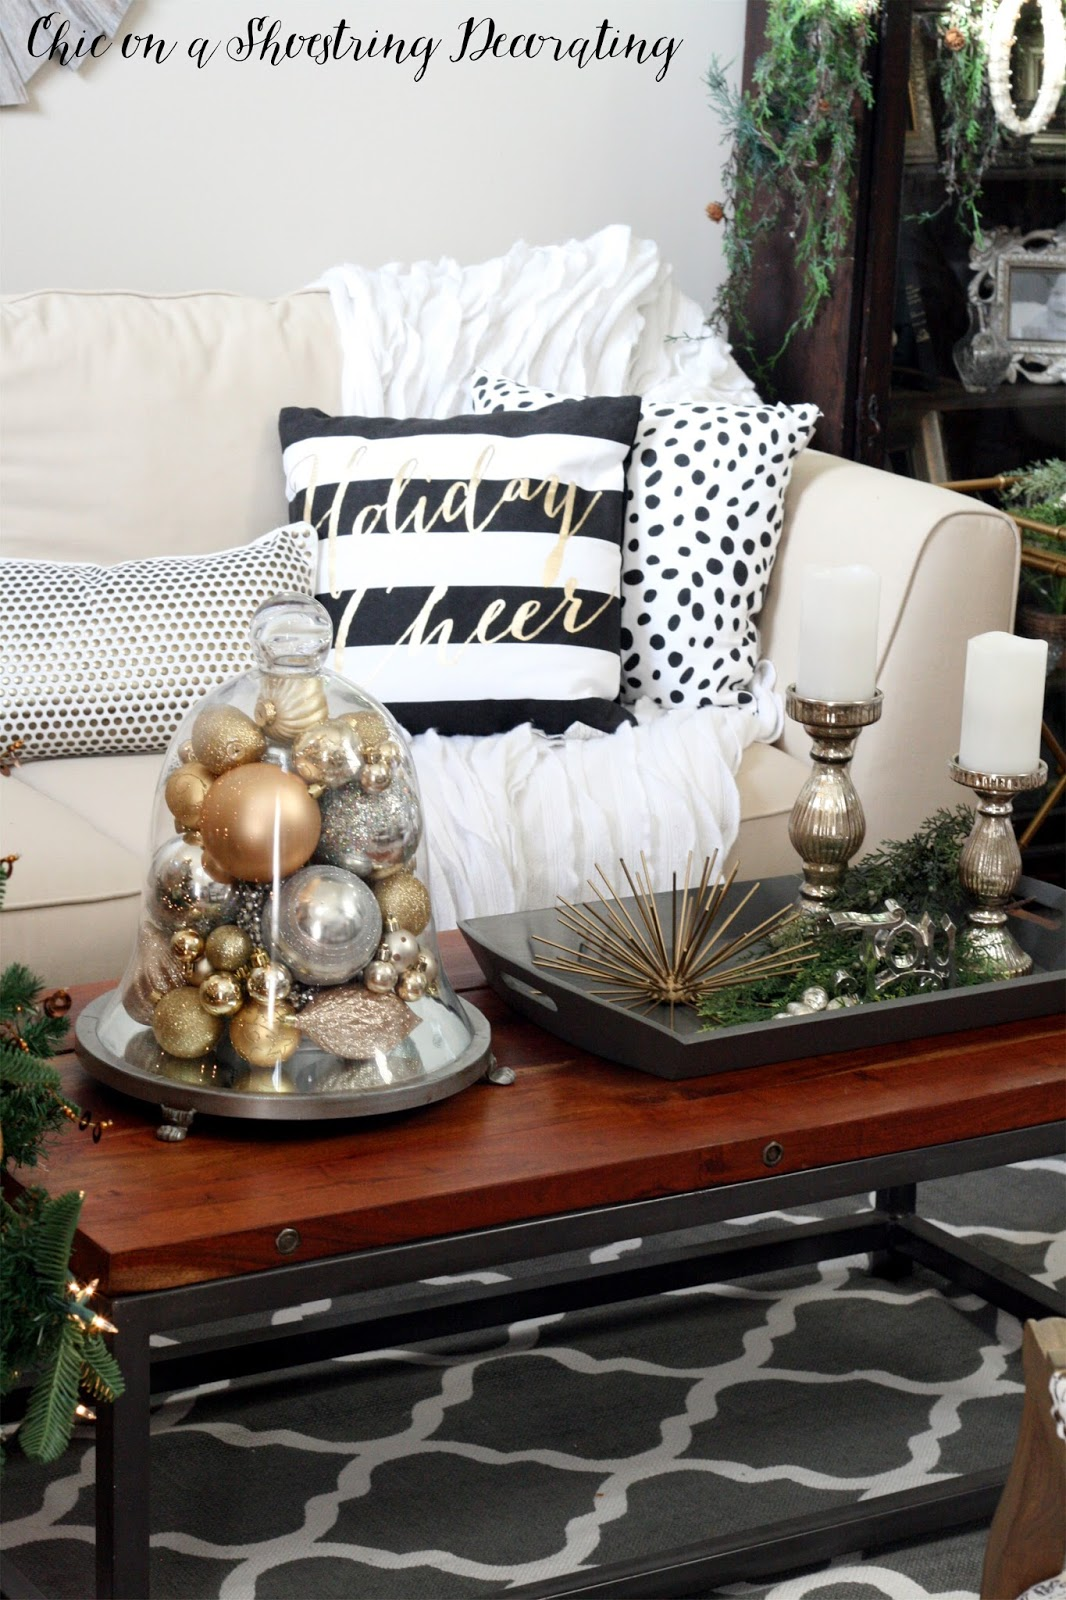 Chic on a Shoestring Decorating: Chic Christmas Decor, Merry ...